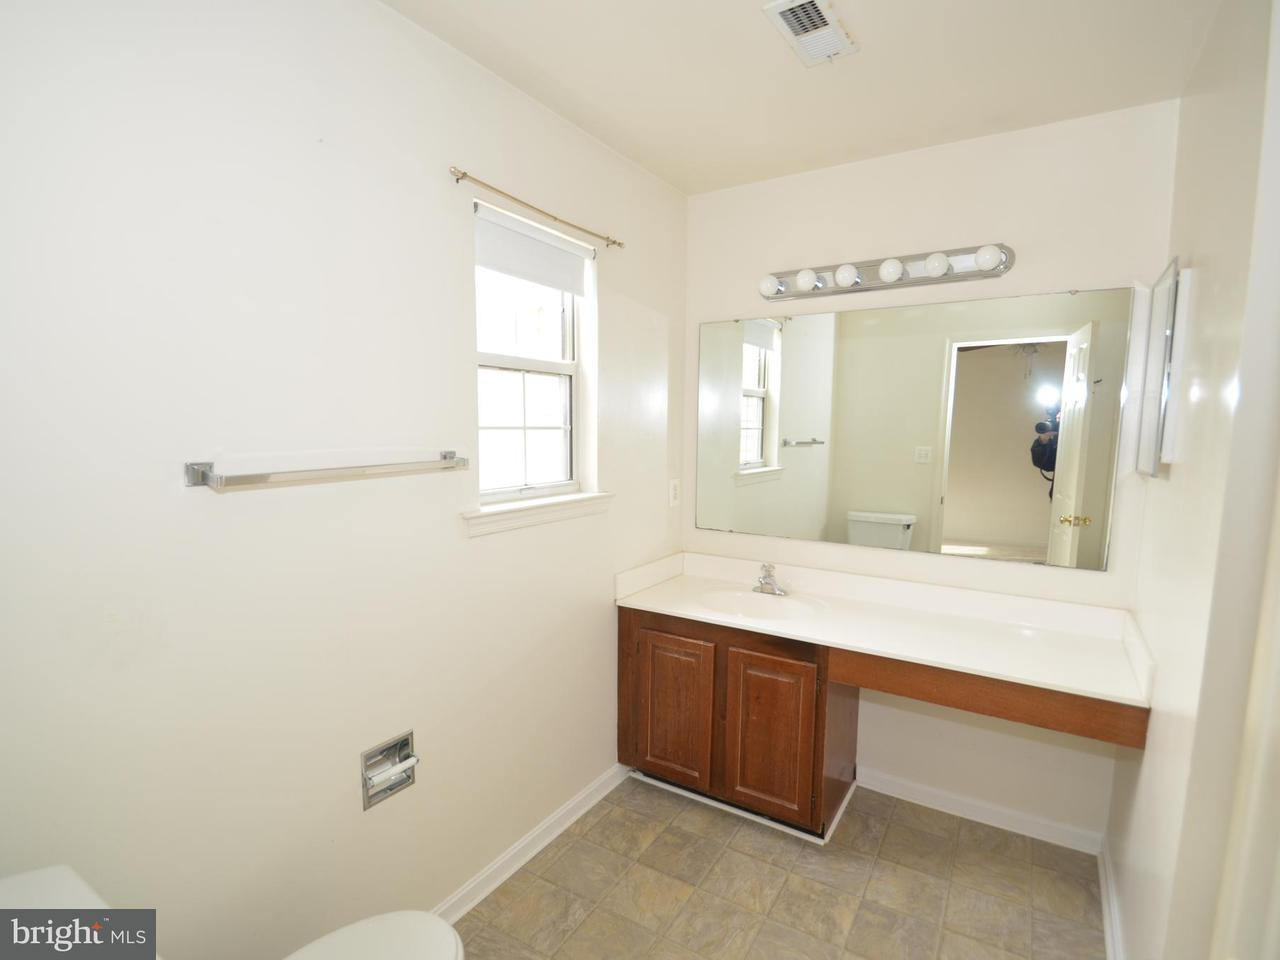 Additional photo for property listing at 5616 Glenwood Mews Drive 5616 Glenwood Mews Drive Alexandria, Виргиния 22315 Соединенные Штаты